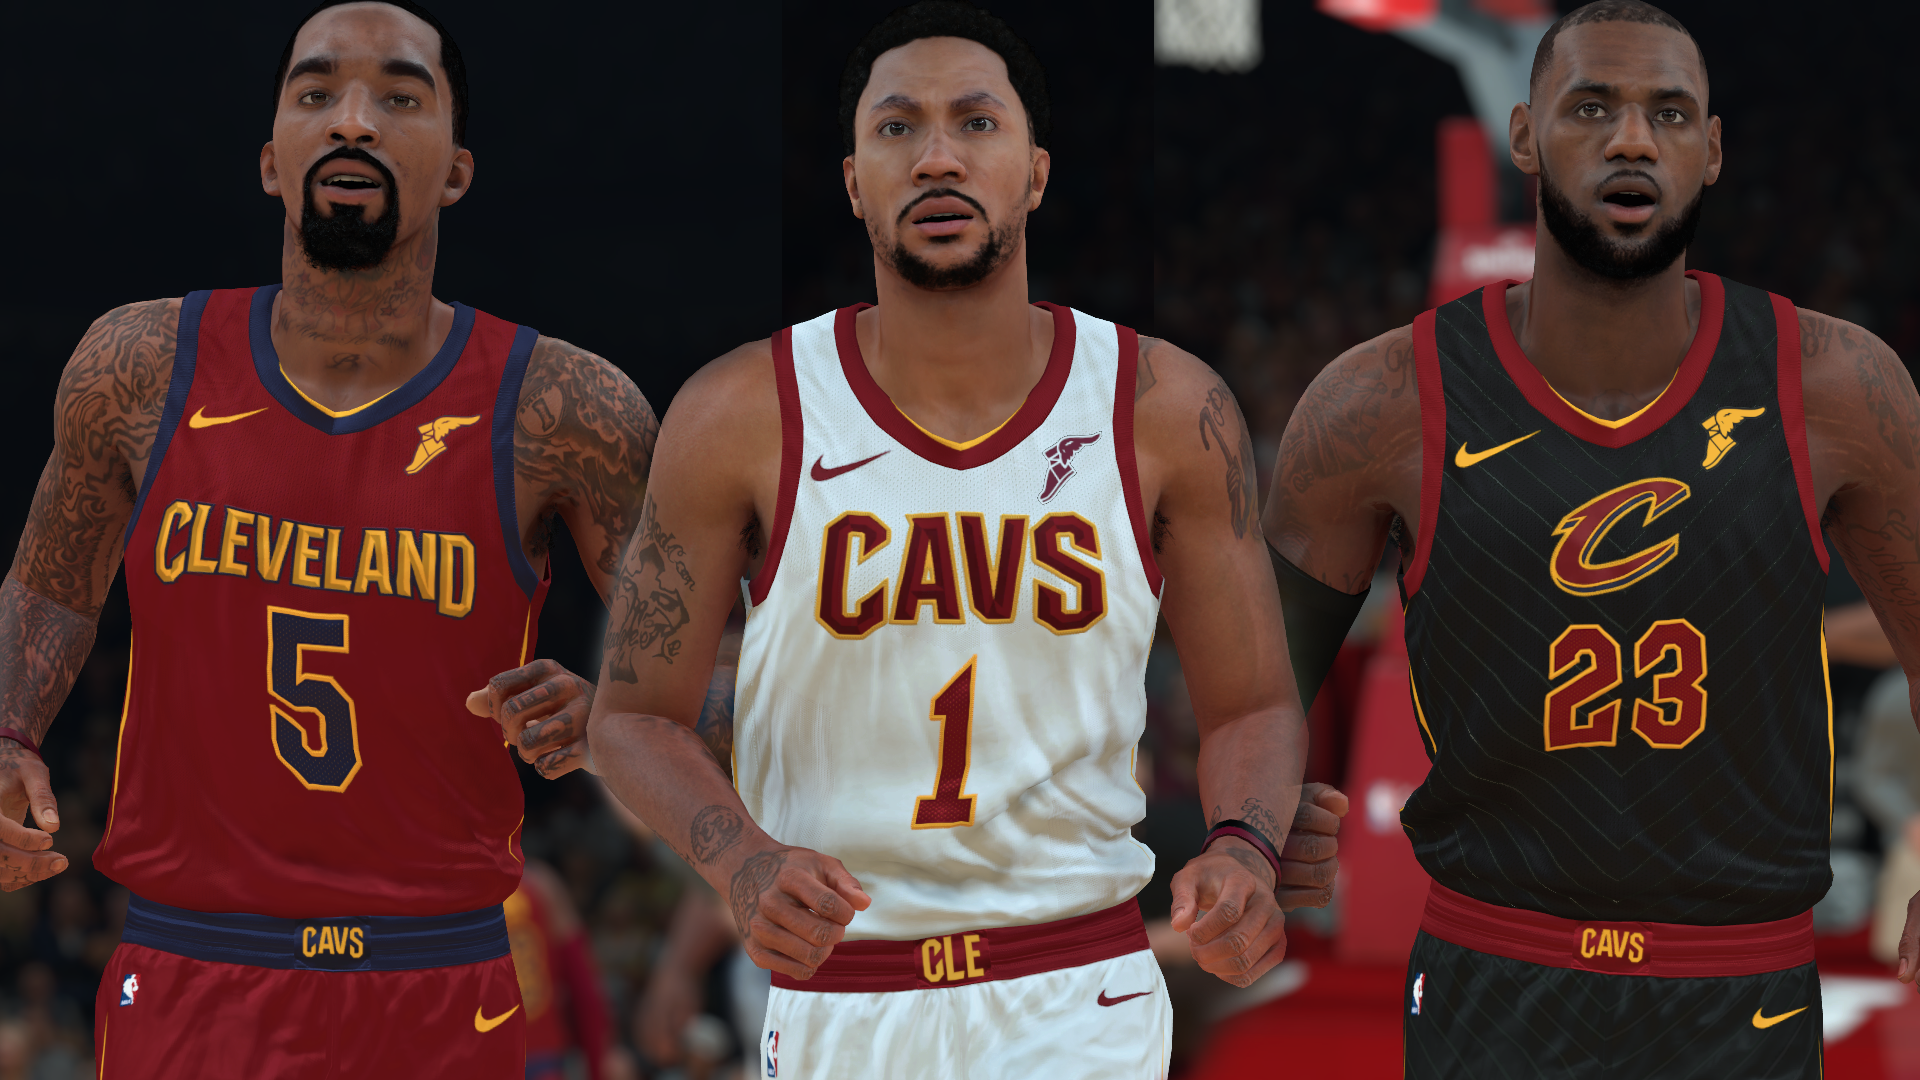 Cleveland Cavaliers Jersey (pinoy21)